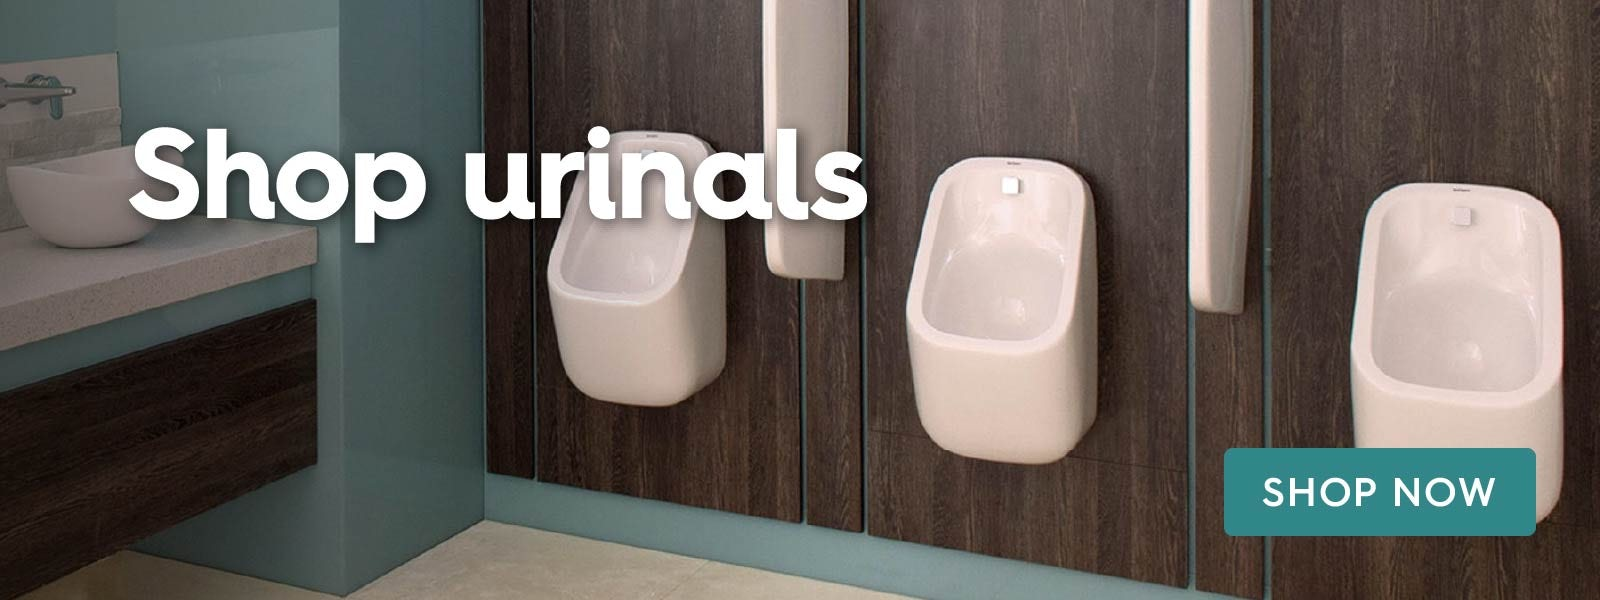 Shop urinals